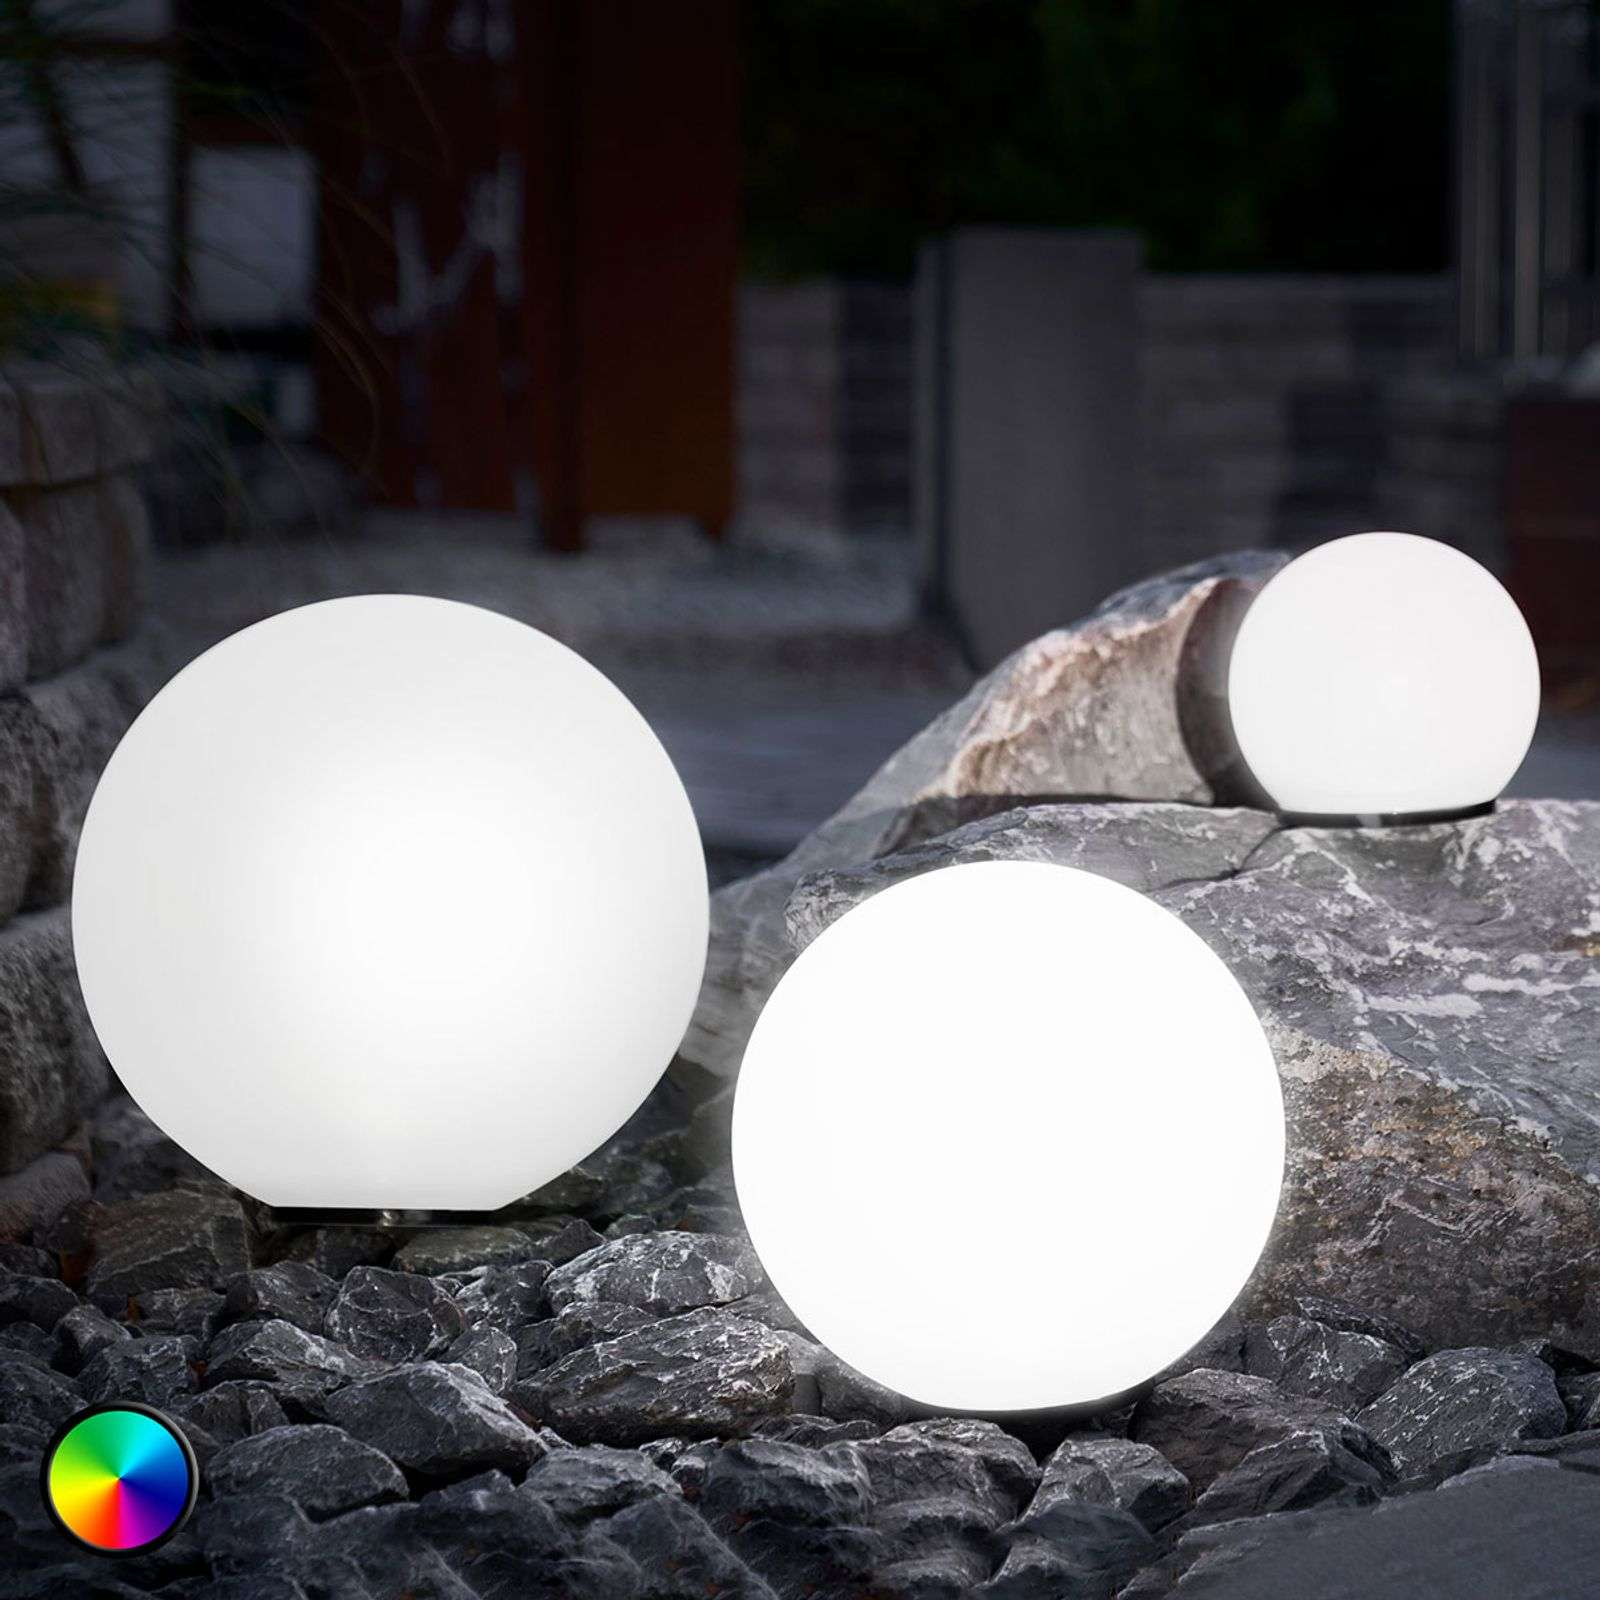 Esfera LED solar set 3 u., función cambio de color